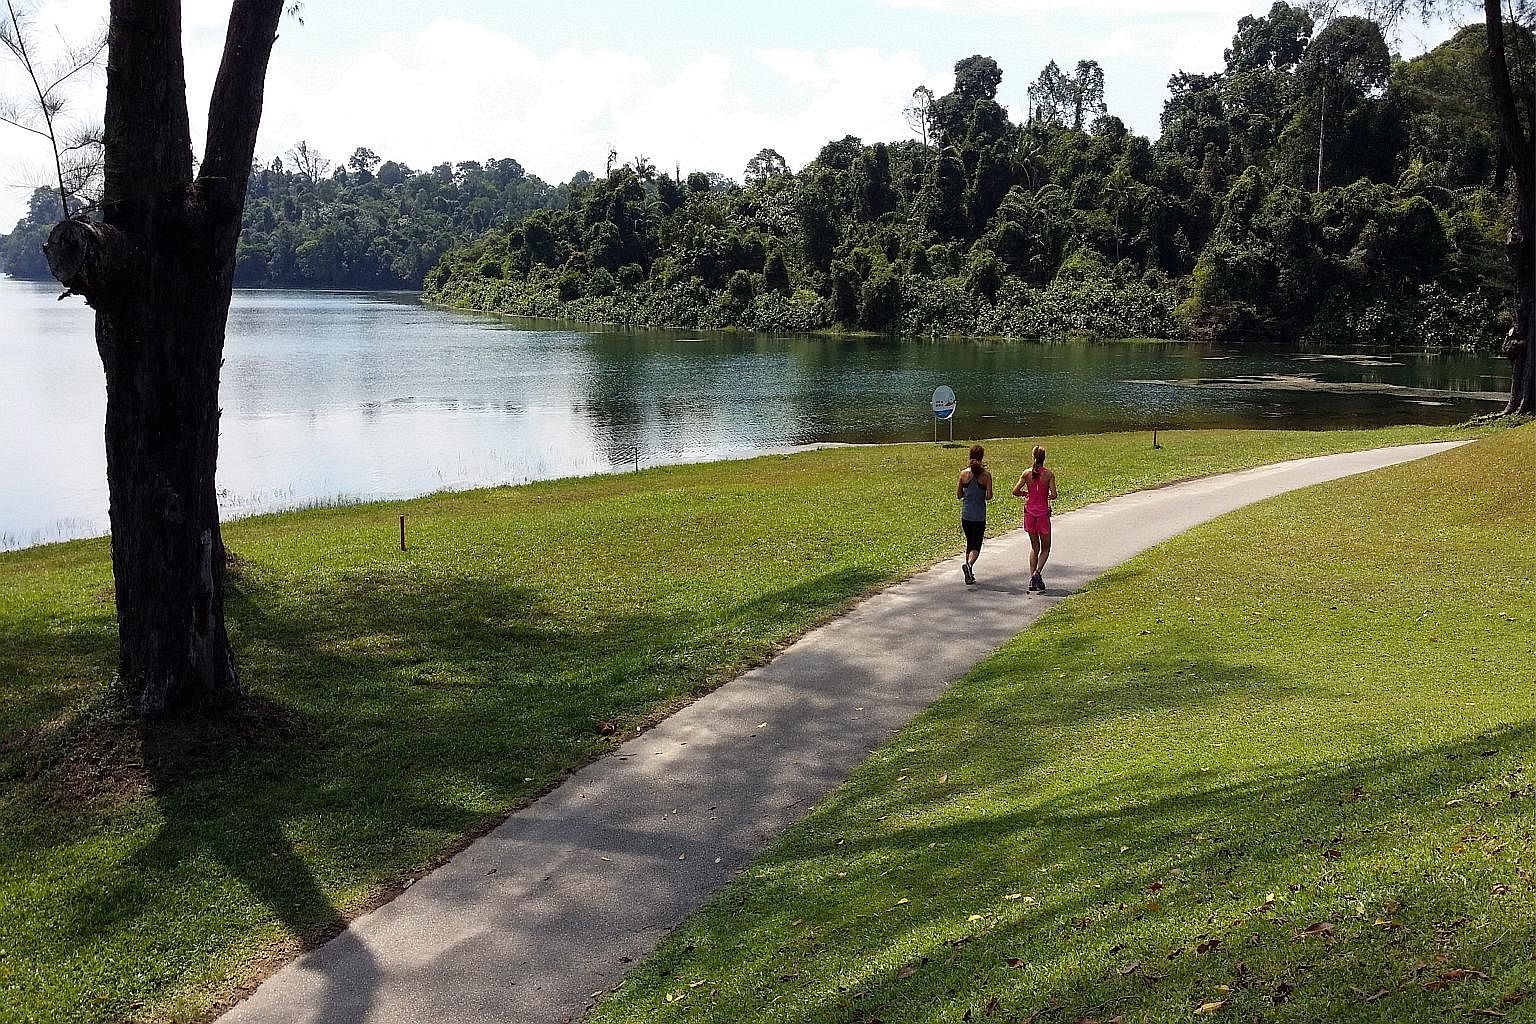 The ability of nature, in areas like MacRitchie Reservoir (above), to improve mental health and well-being is well-documented.